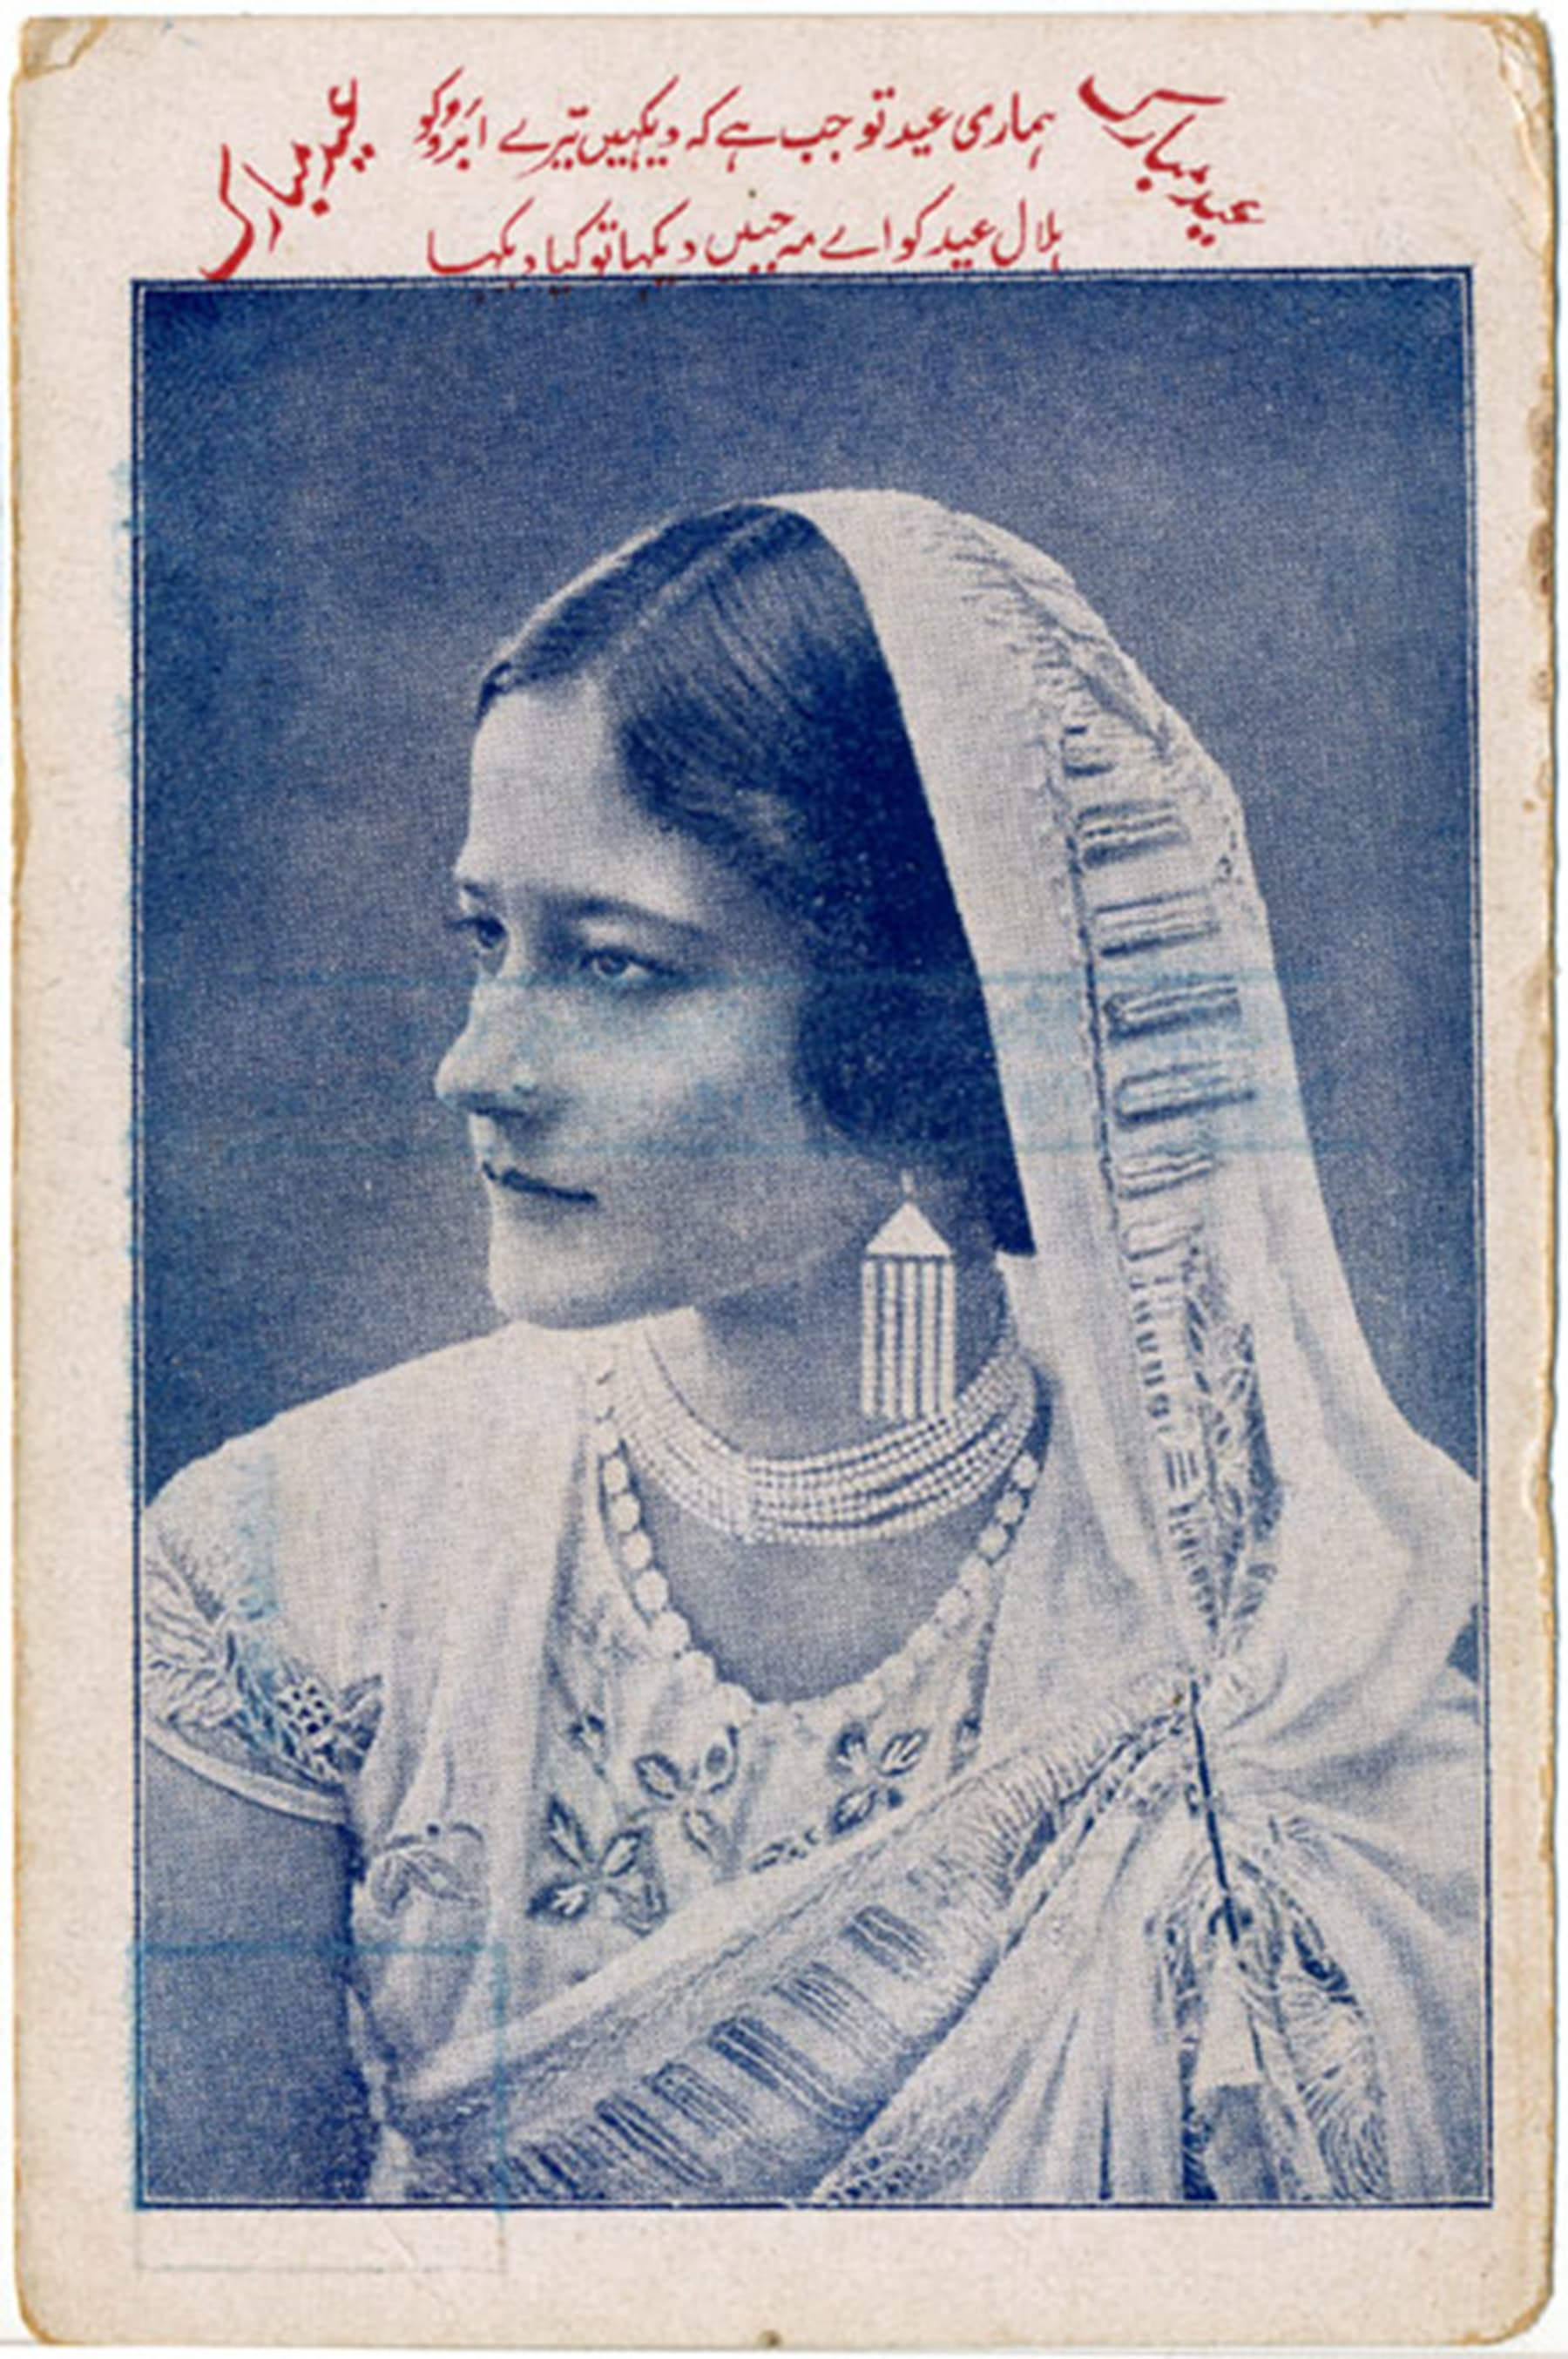 Eid card featuring celebrated sub-continental singer Kajjan Begum. Distributed by Sultan Husen Bookseller, Bombay. From the collection of Reena Mohan.